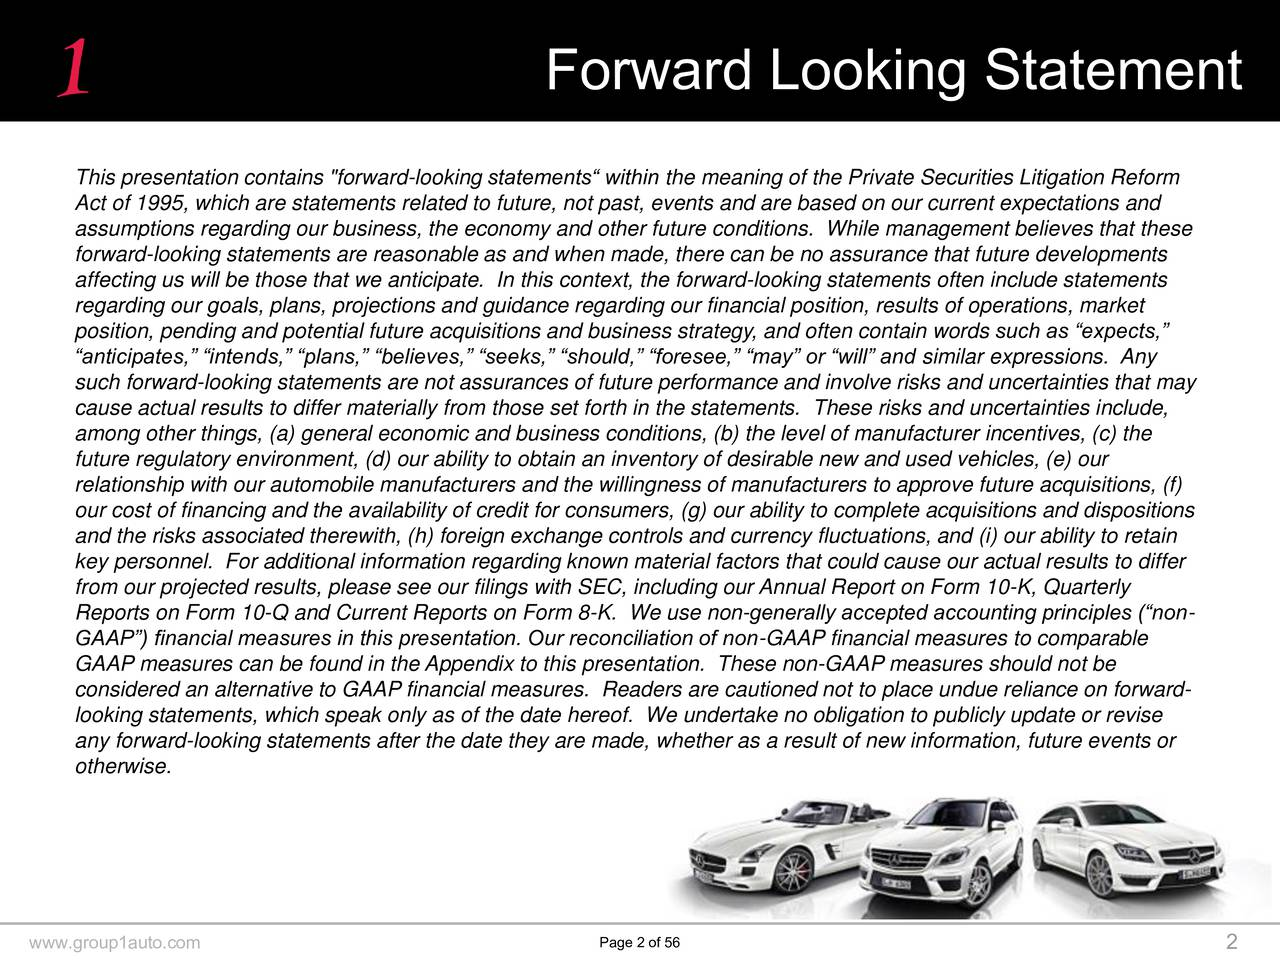 """This presentation contains """"forward-looking statements within the meaning of the Private Securities Litigation Reform Act of 1995, which are statements related to future, not past, events and are based on our current expectations and assumptions regarding our business, the economy and other future conditions. While management believes that these forward-looking statements are reasonable as and when made, there can be no assurance that future developments affecting us will be those that we anticipate. In this context, the forward-looking statements often include statements regarding our goals, plans, projections and guidance regarding our financial position, results of operations, market position, pending and potential future acquisitions and business strategy, and often contain words such as expects, anticipates, intends, plans, believes, seeks, should, foresee, may or will and similar expressions. Any such forward-looking statements are not assurances of future performance and involve risks and uncertainties that may cause actual results to differ materially from those set forth in the statements. These risks and uncertainties include, among other things, (a) general economic and business conditions, (b) the level of manufacturer incentives, (c) the future regulatory environment, (d) our ability to obtain an inventory of desirable new and used vehicles, (e) our relationship with our automobile manufacturers and the willingness of manufacturers to approve future acquisitions, (f) our cost of financing and the availability of credit for consumers, (g) our ability to complete acquisitions and dispositions and the risks associated therewith, (h) foreign exchange controls and currency fluctuations, and (i) our ability to retain key personnel. For additional information regarding known material factors that could cause our actual results to differ from our projected results, please see our filings with SEC, including our Annual Report on Form 10-K, Quarterly Reports on F"""